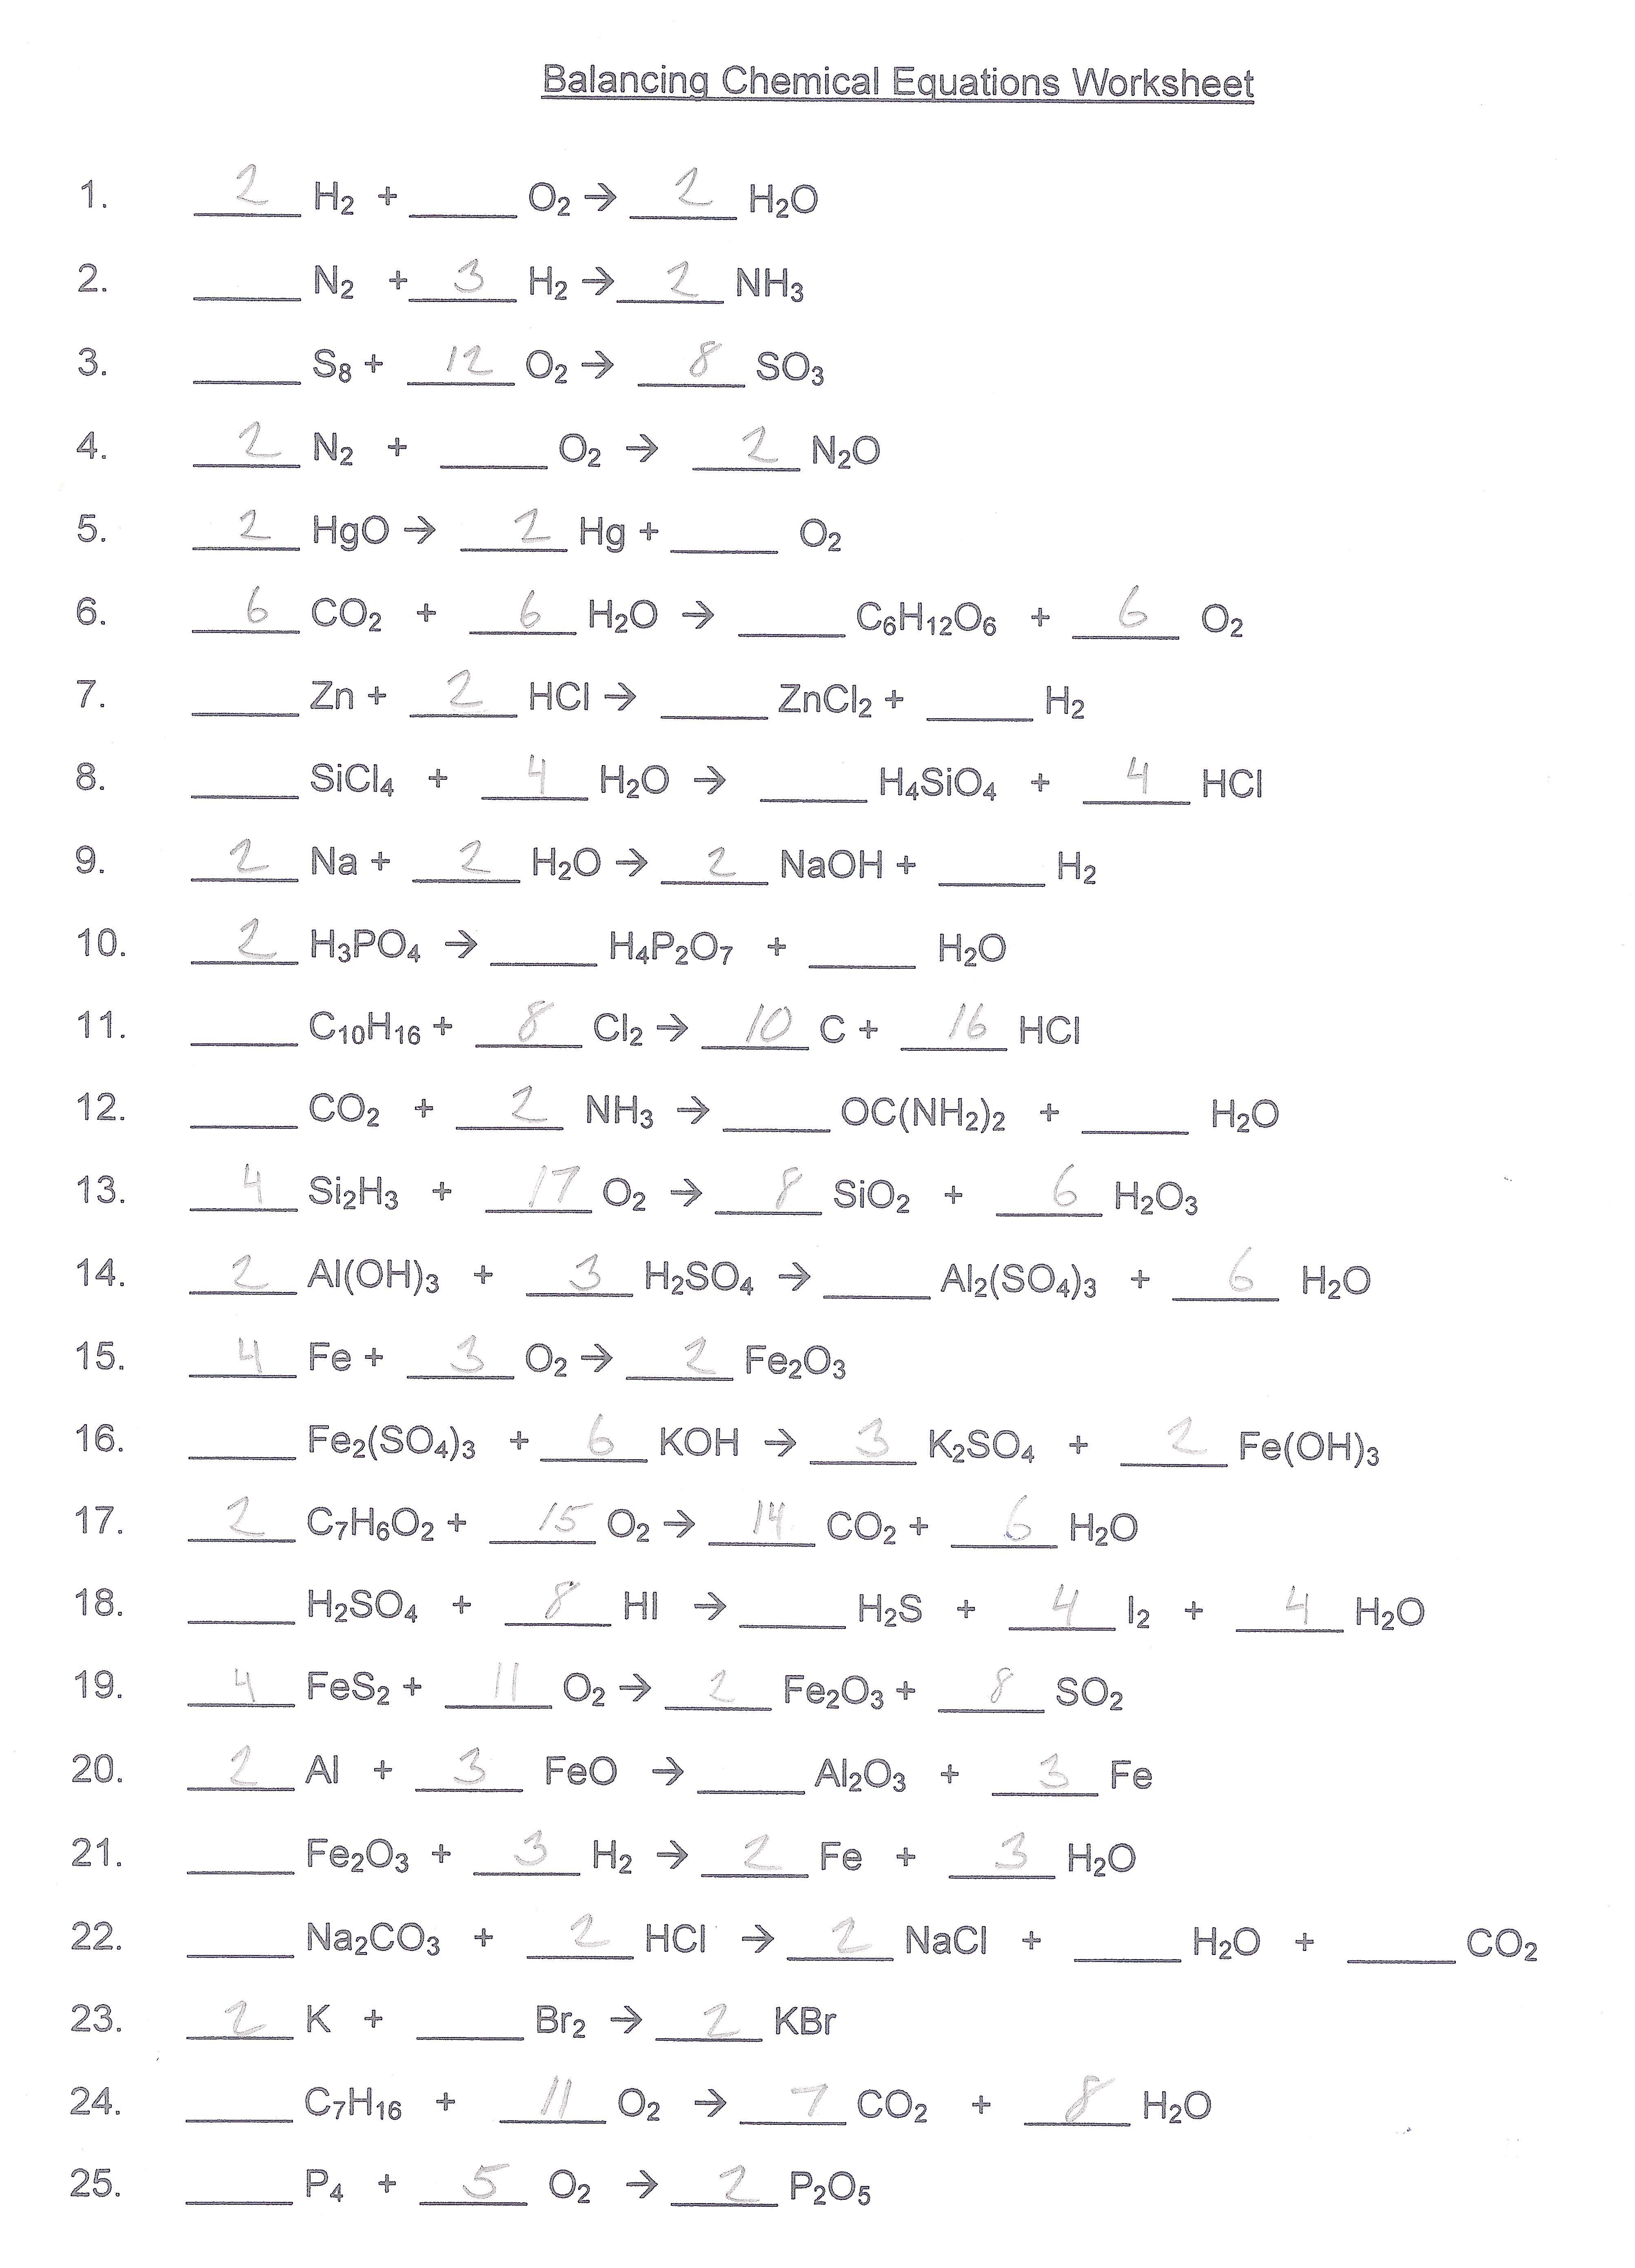 Balancing Chemical Equations Worksheet Answer Key ...